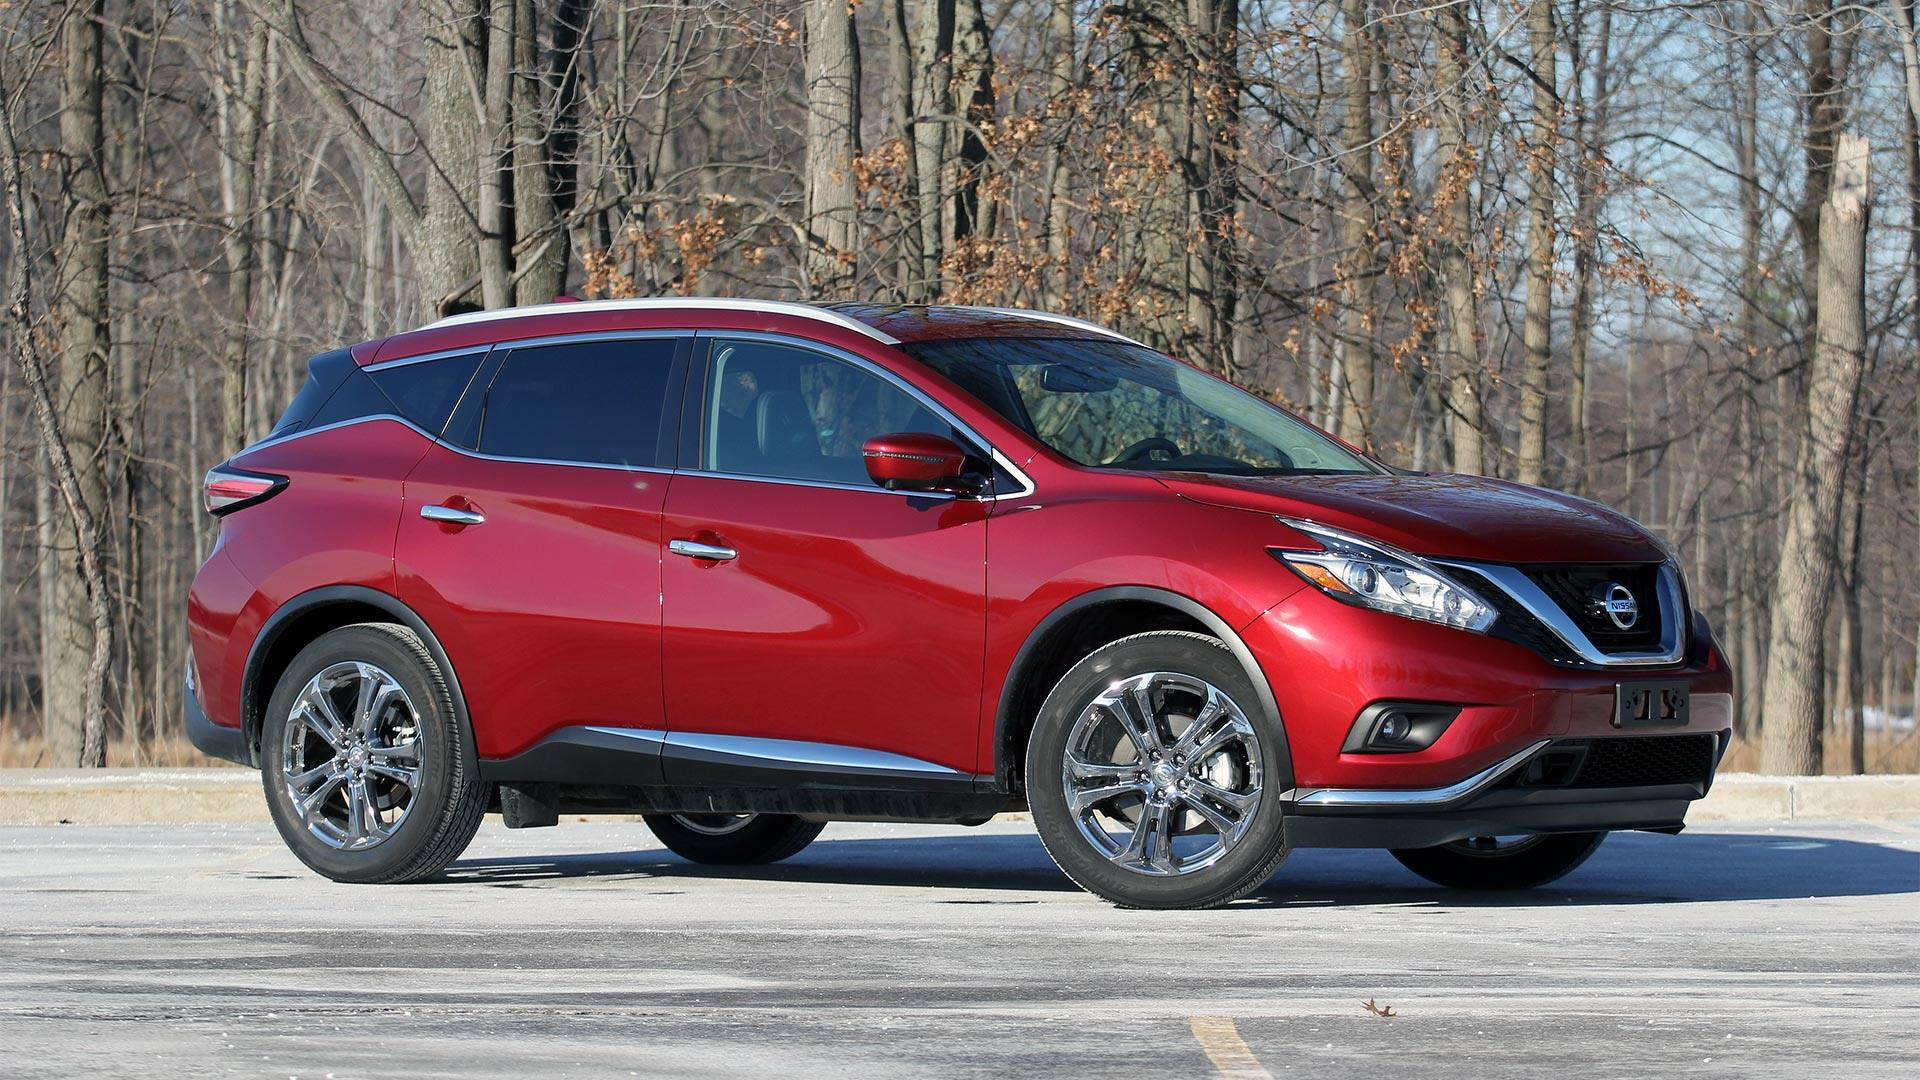 2018-nissa​n-murano-r​eview